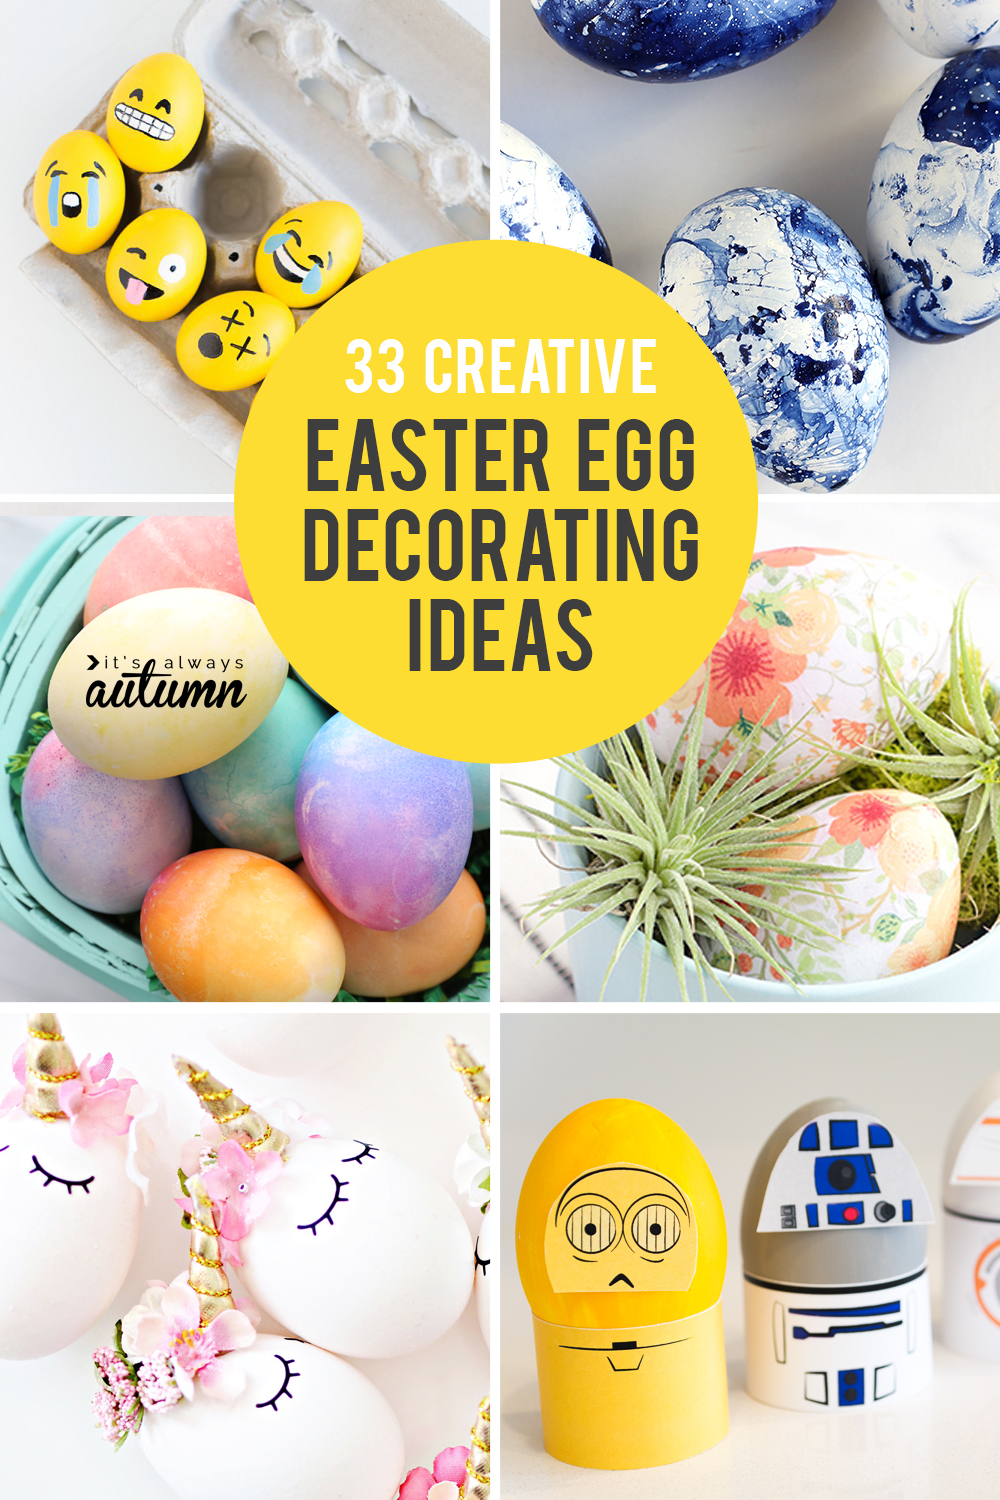 33 Amazing Egg Decorating Ideas For Easter Ditch The Dye It S